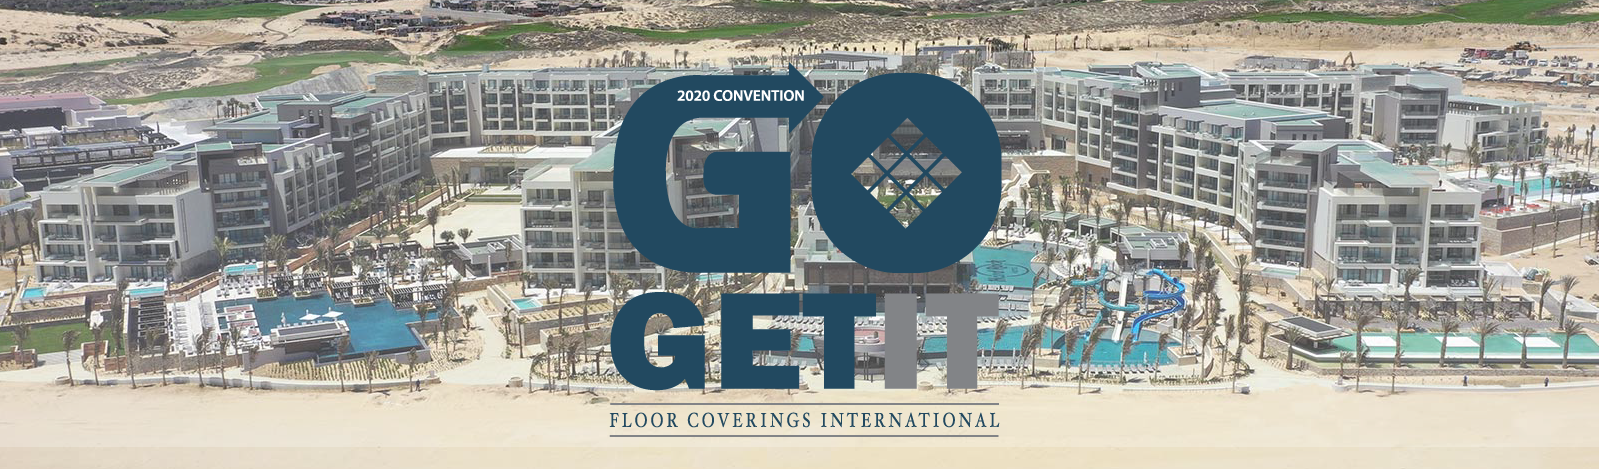 Floor Coverings International Annual Convention